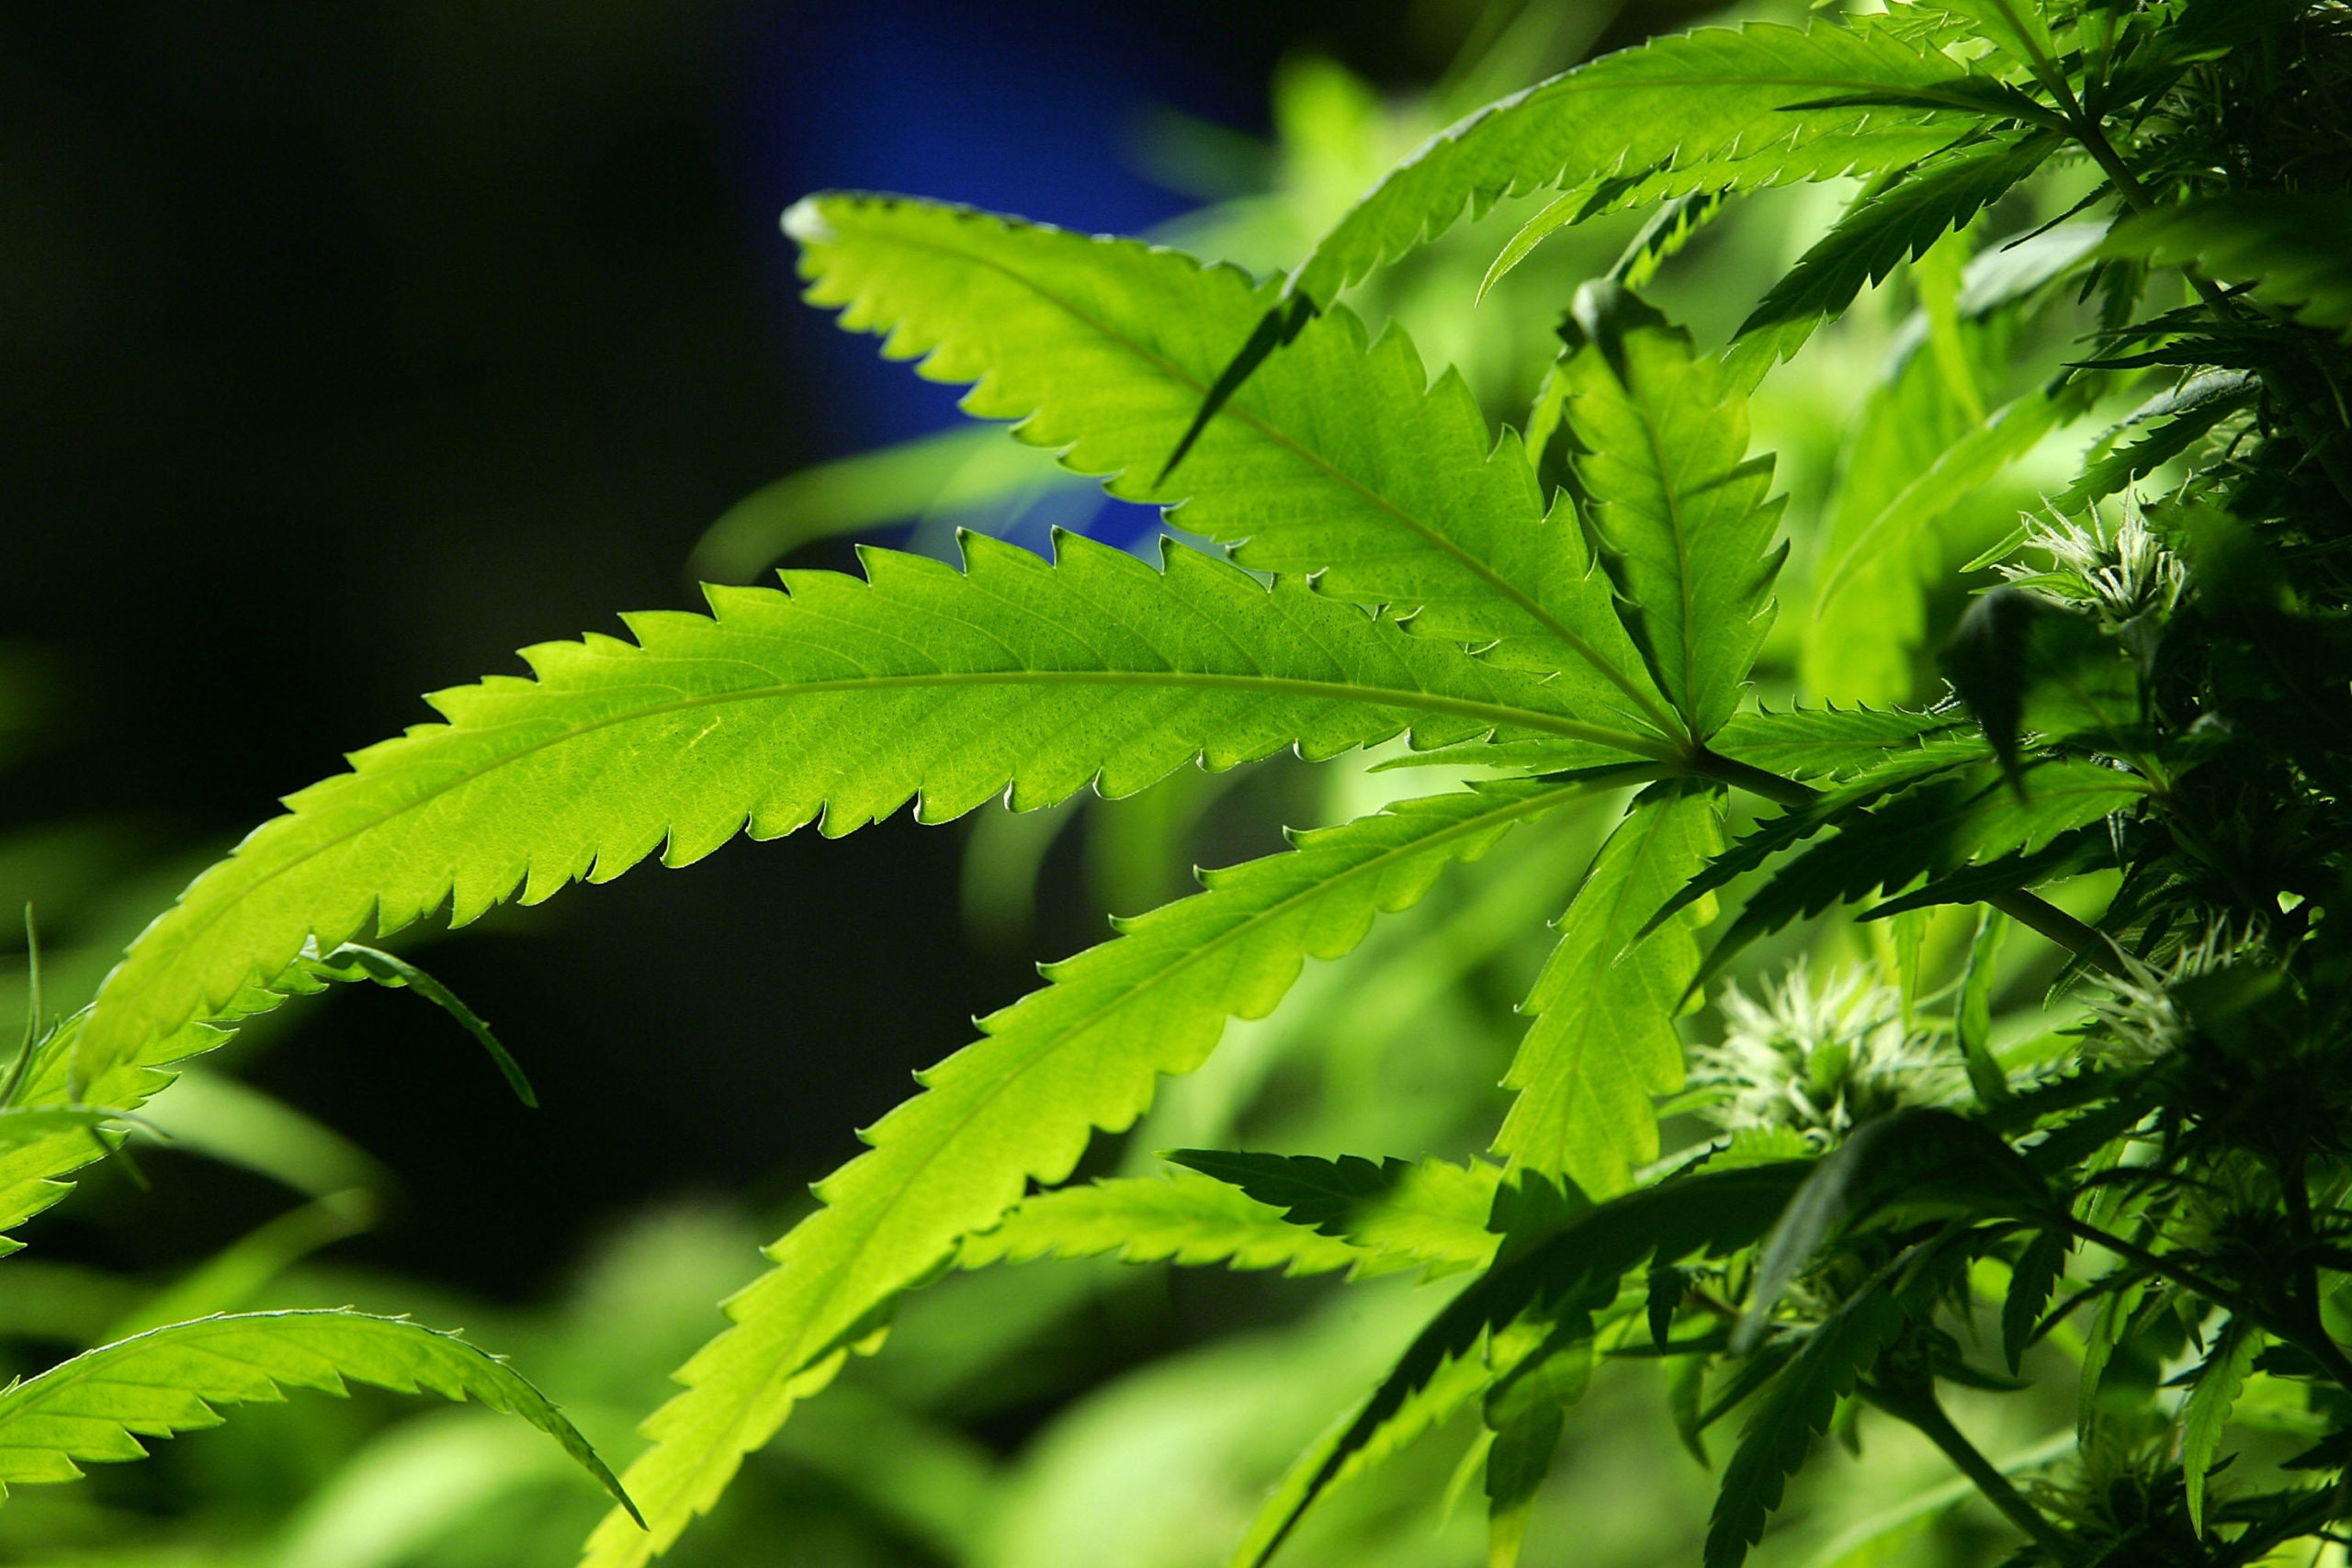 The legal hemp industry still has its challenges for growers | 1040 WHO - KFI AM 640